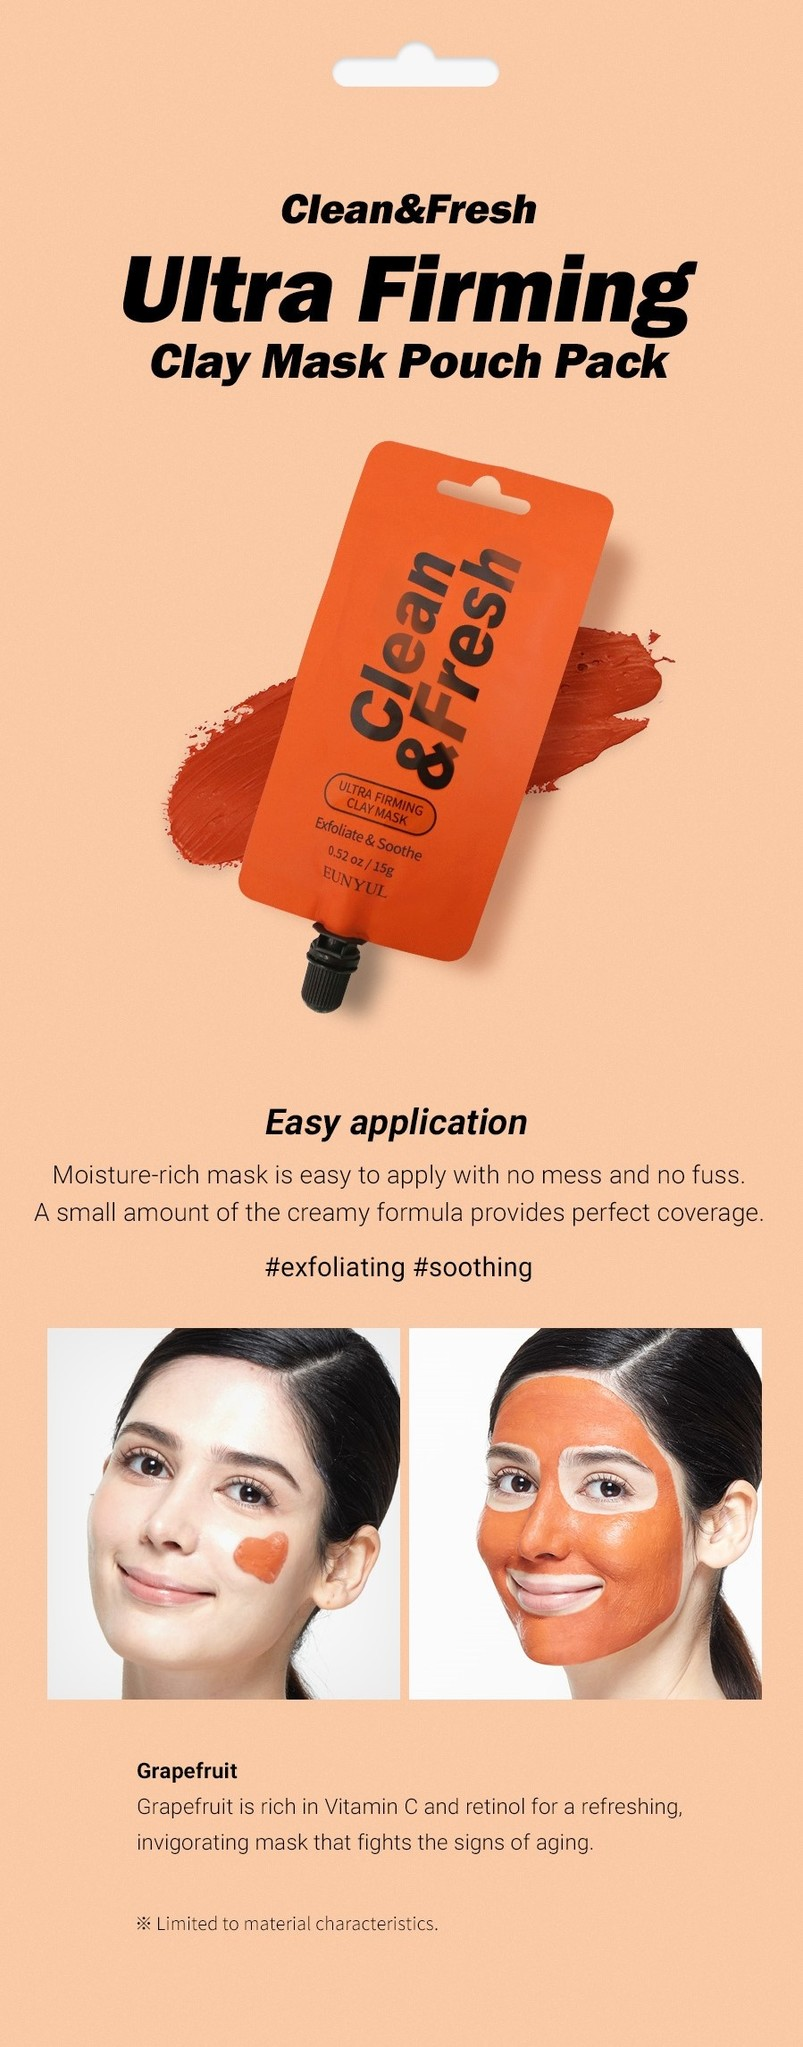 Clean & Fresh Clay Mask Pouch Pack - Ultra Firming-4